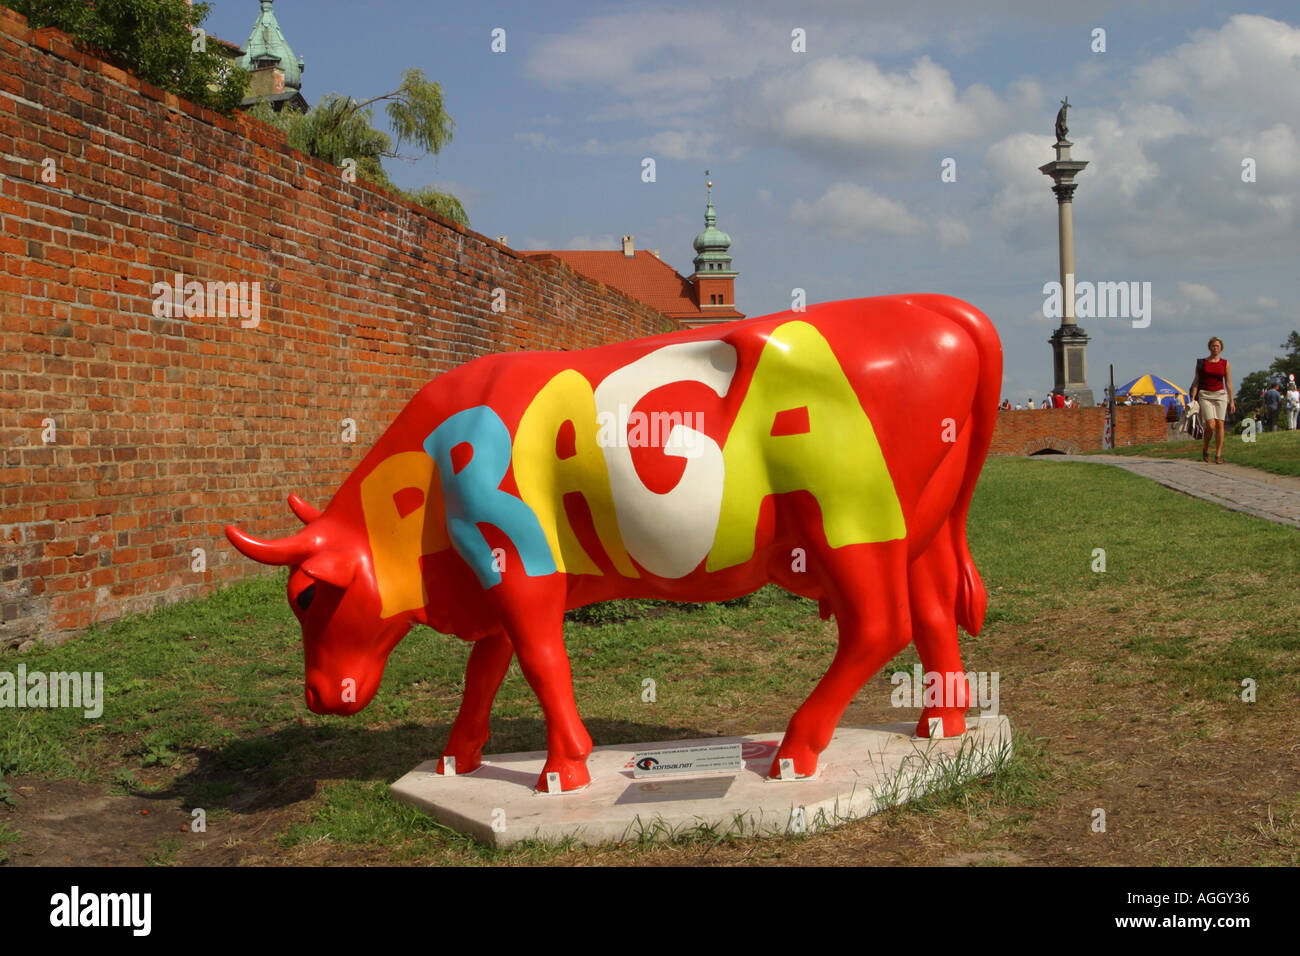 Warsaw Old Town Poland Modern Art Cow figure marked Praga stands alongside the old town walls taken Summer 2005 - Stock Image